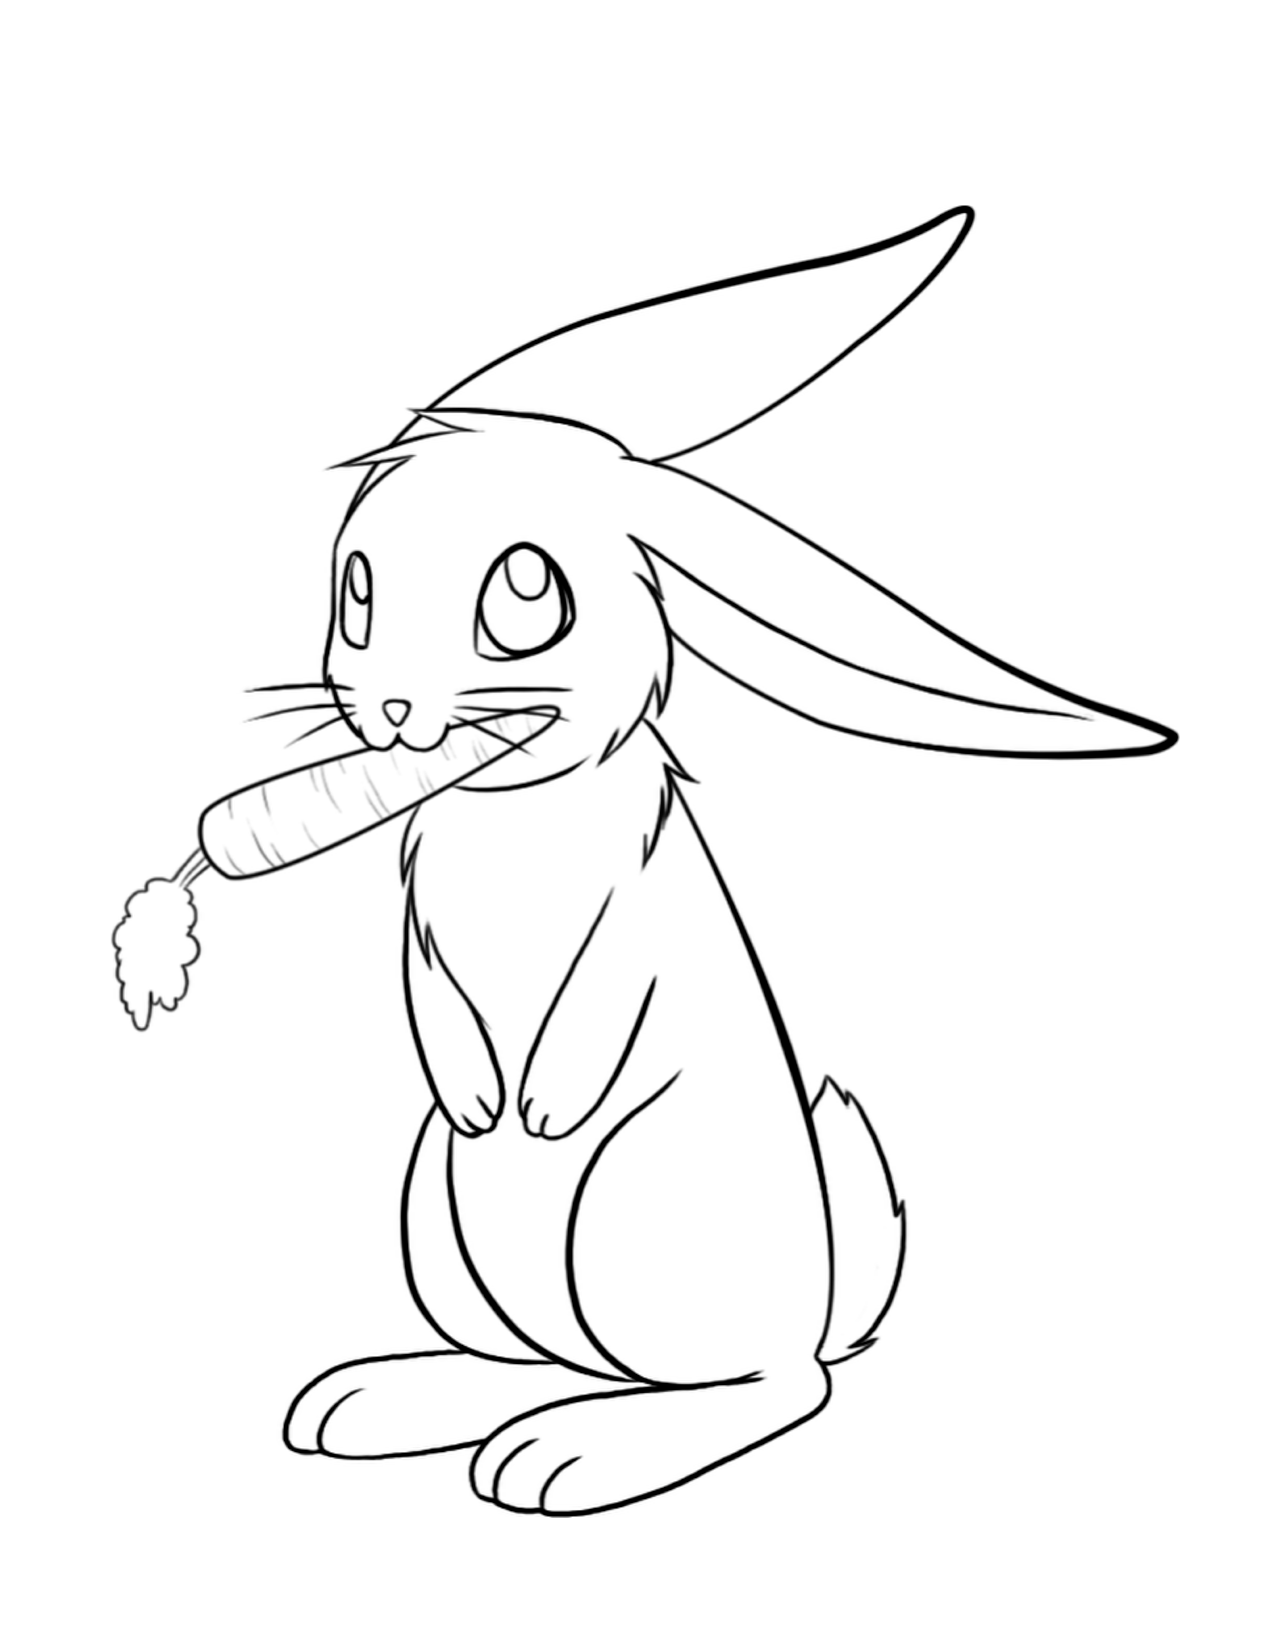 Cute-Bunny-Coloring-Pages-For-Kids.png (1275×1650) | desenhos ...